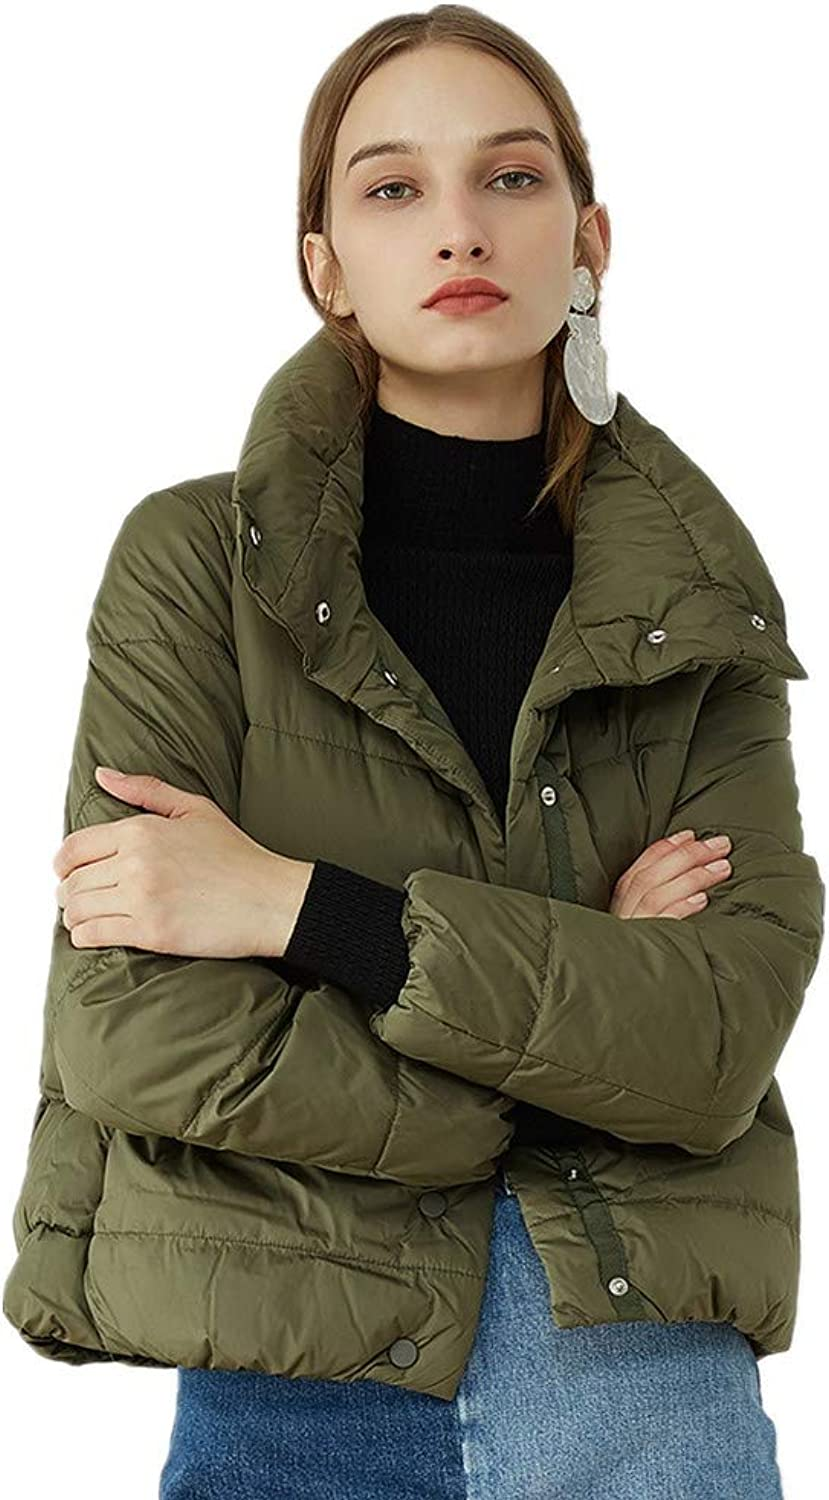 SIMPLE-H Women's Winter Short Down Jacket Fashion Lapel Ladies Casual White Duck Down Warm Jacket